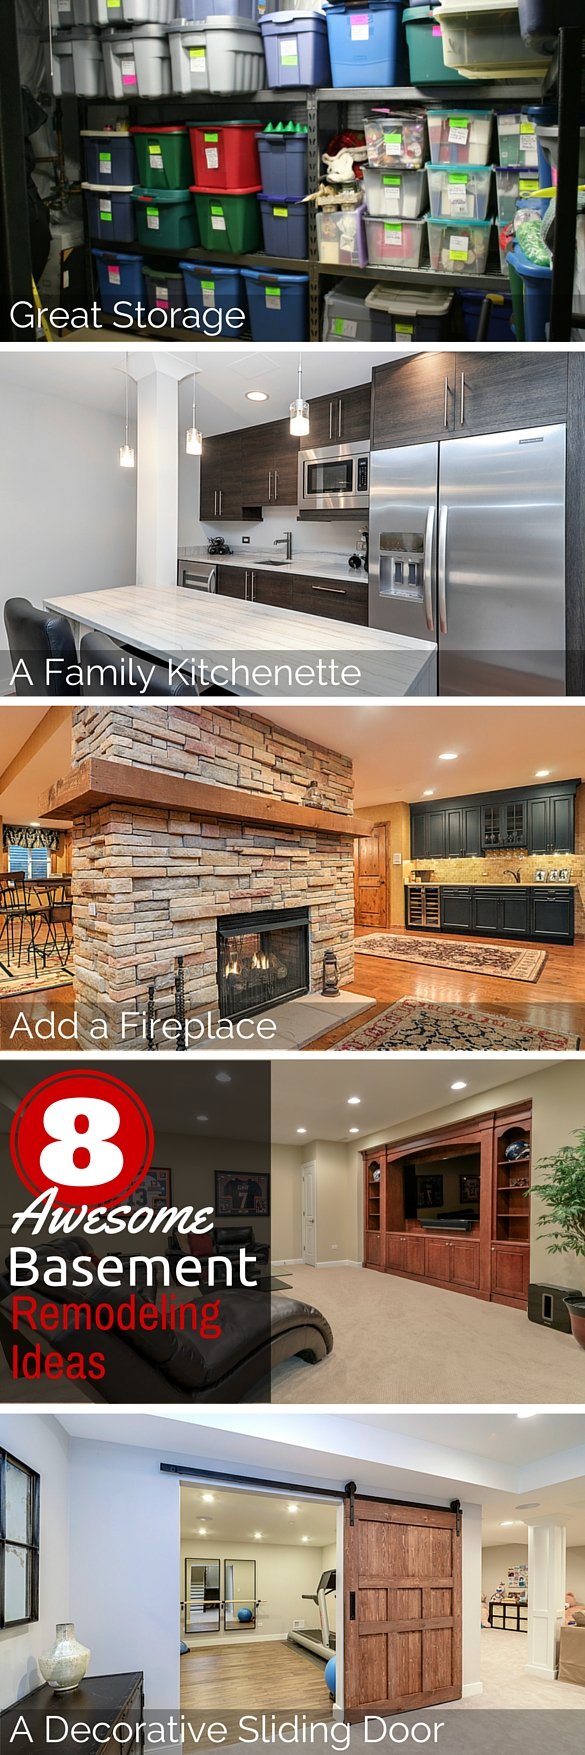 Awesome Basement Remodeling Ideas 4 Sebring Services